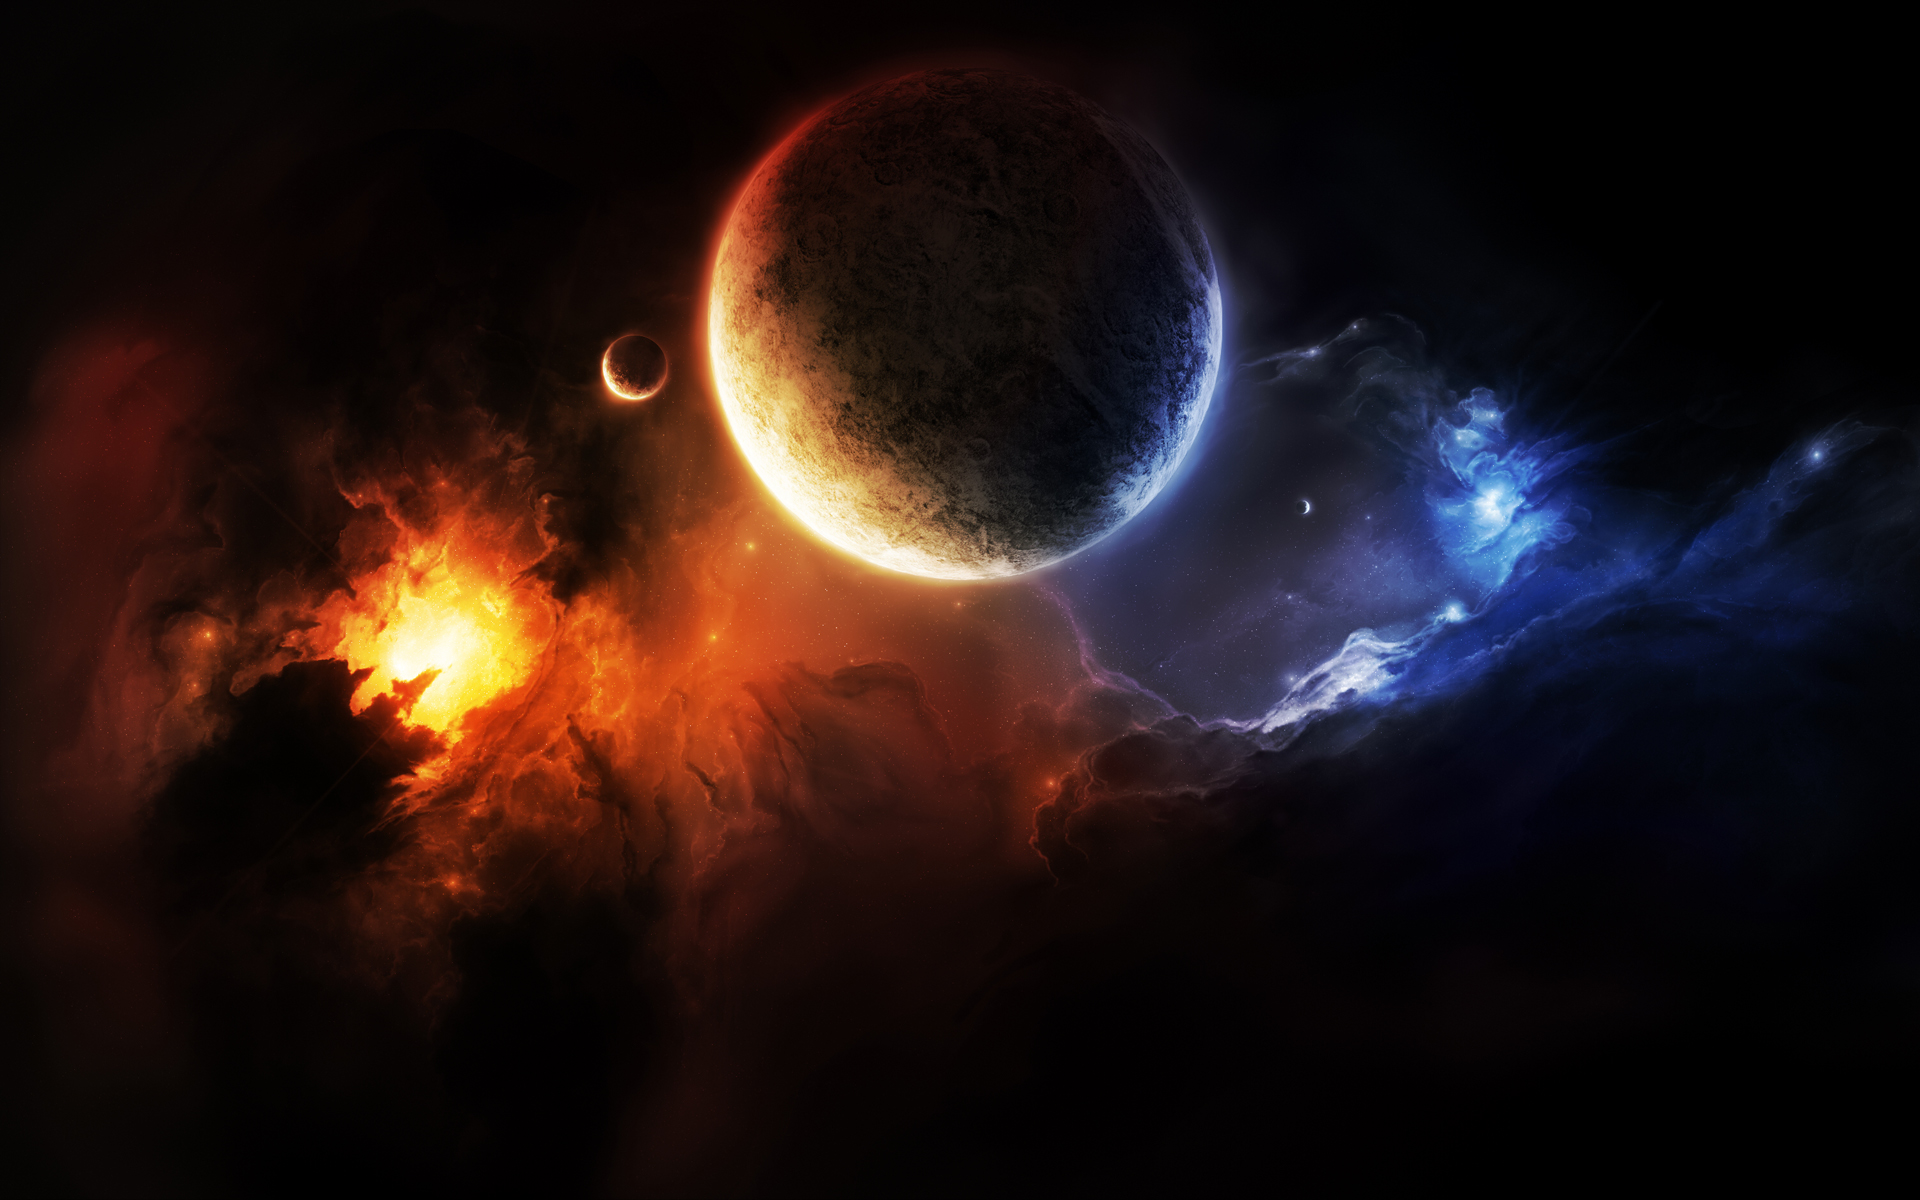 3d planets wallpaper hd - photo #38